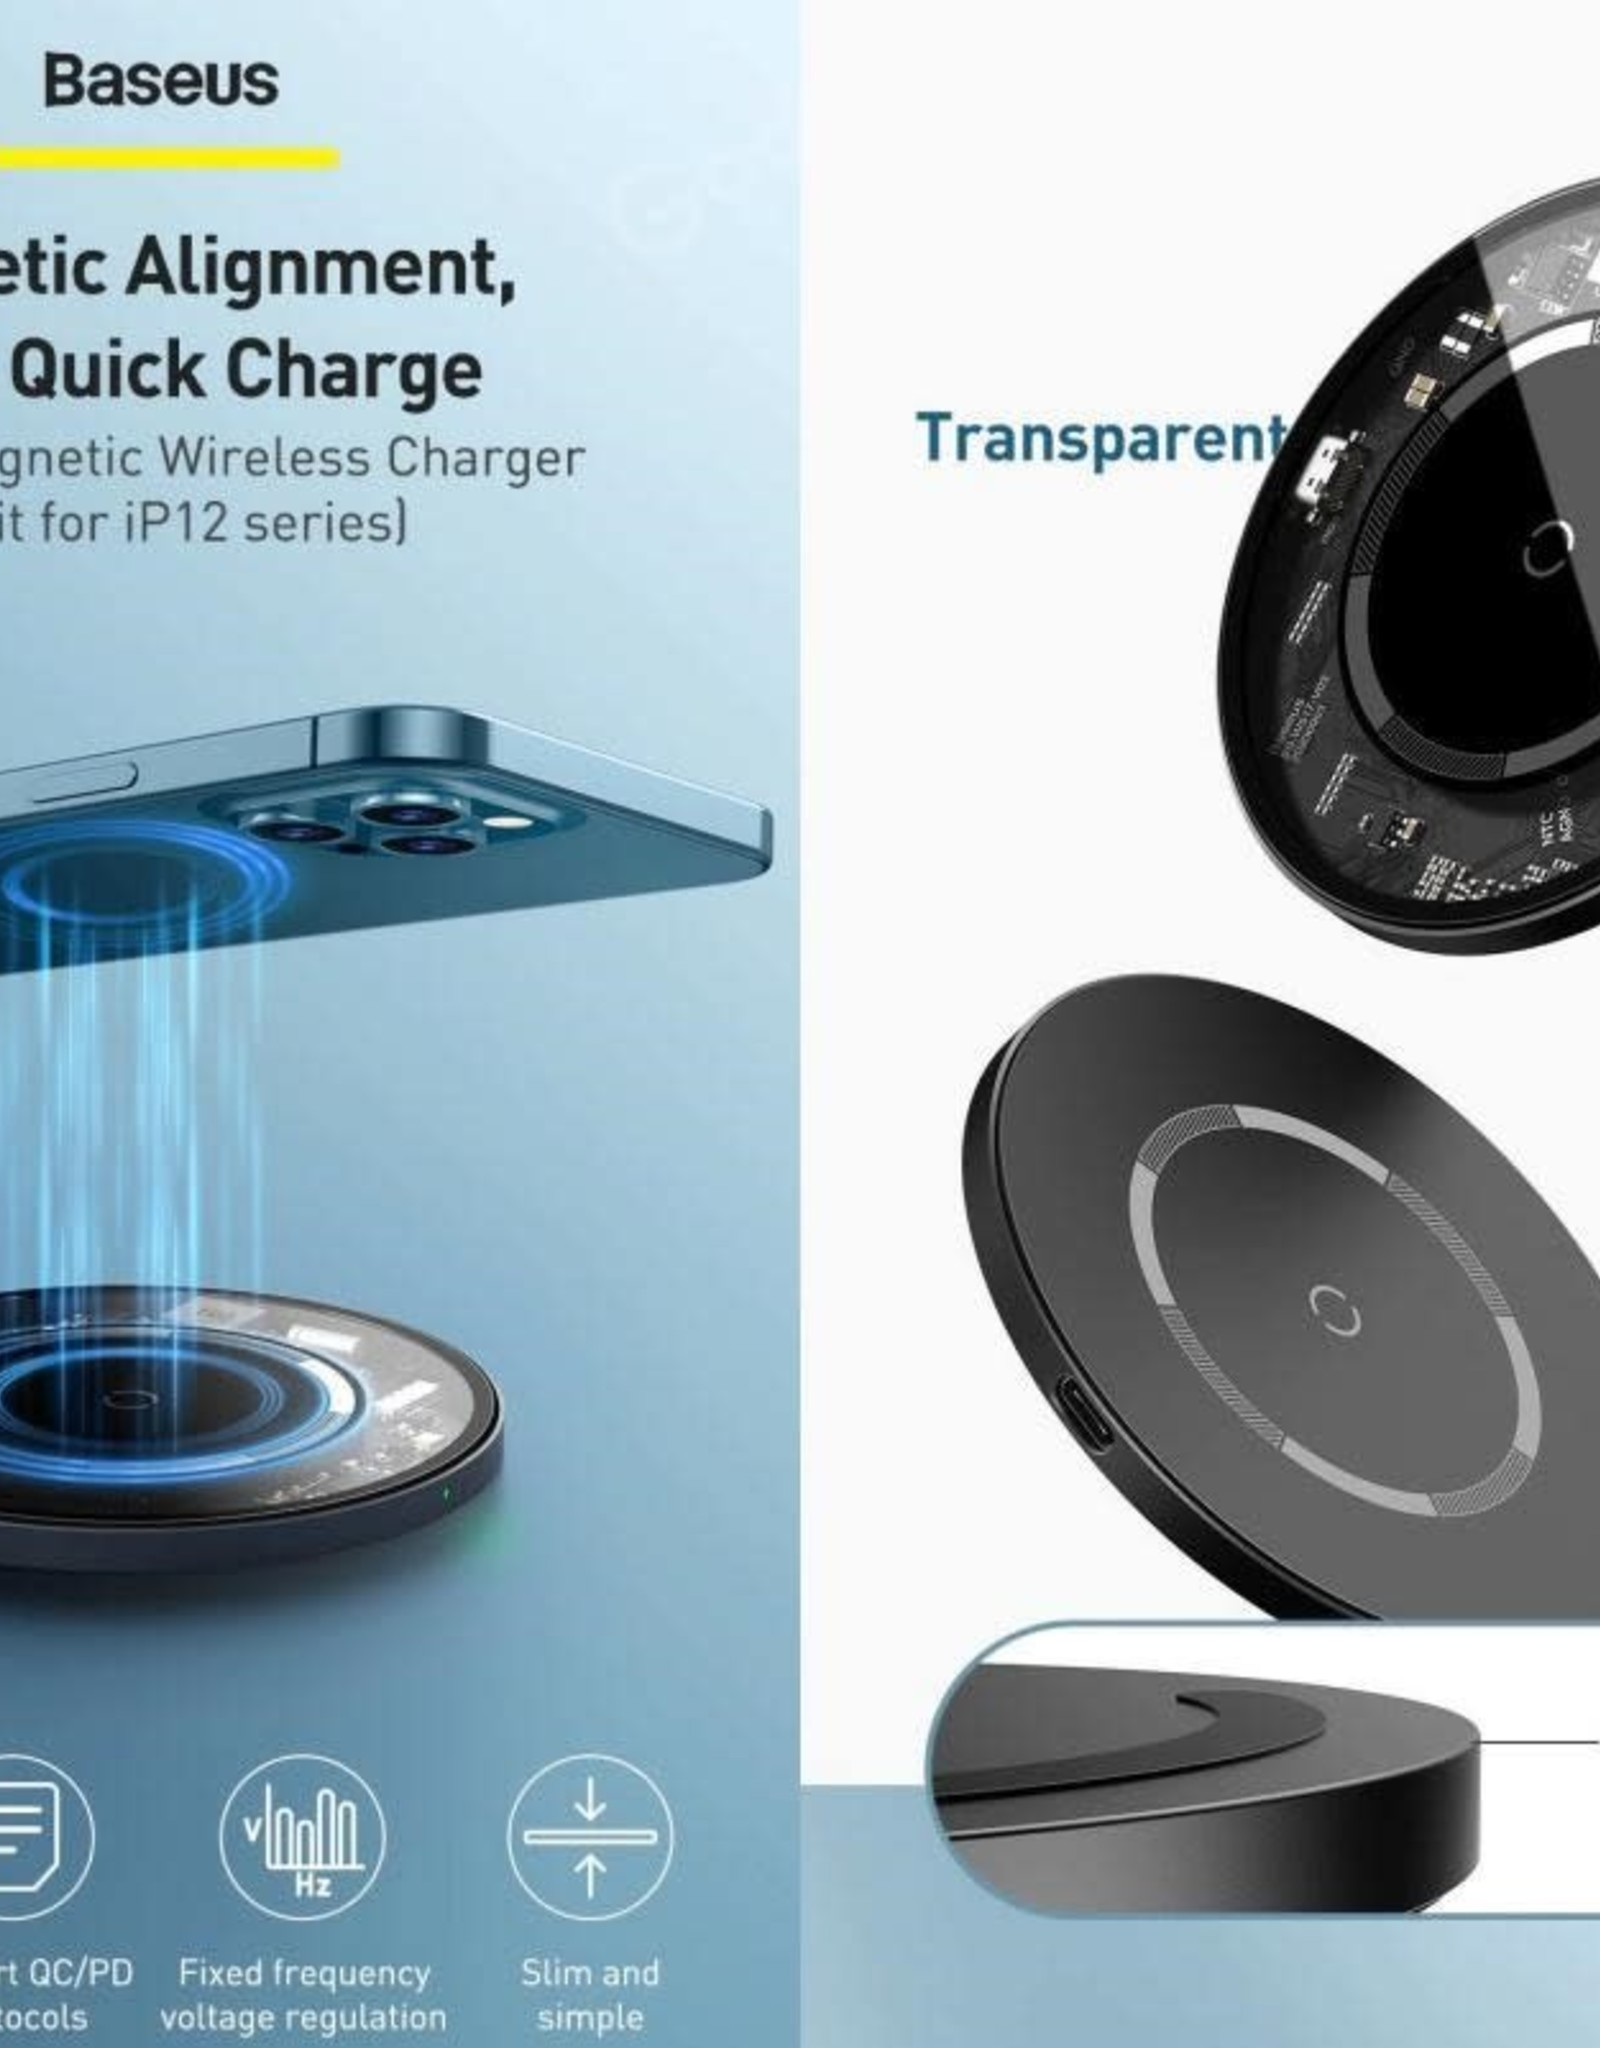 Baseus Baseus Simple Magnetic Wireless Charger (For iP12)